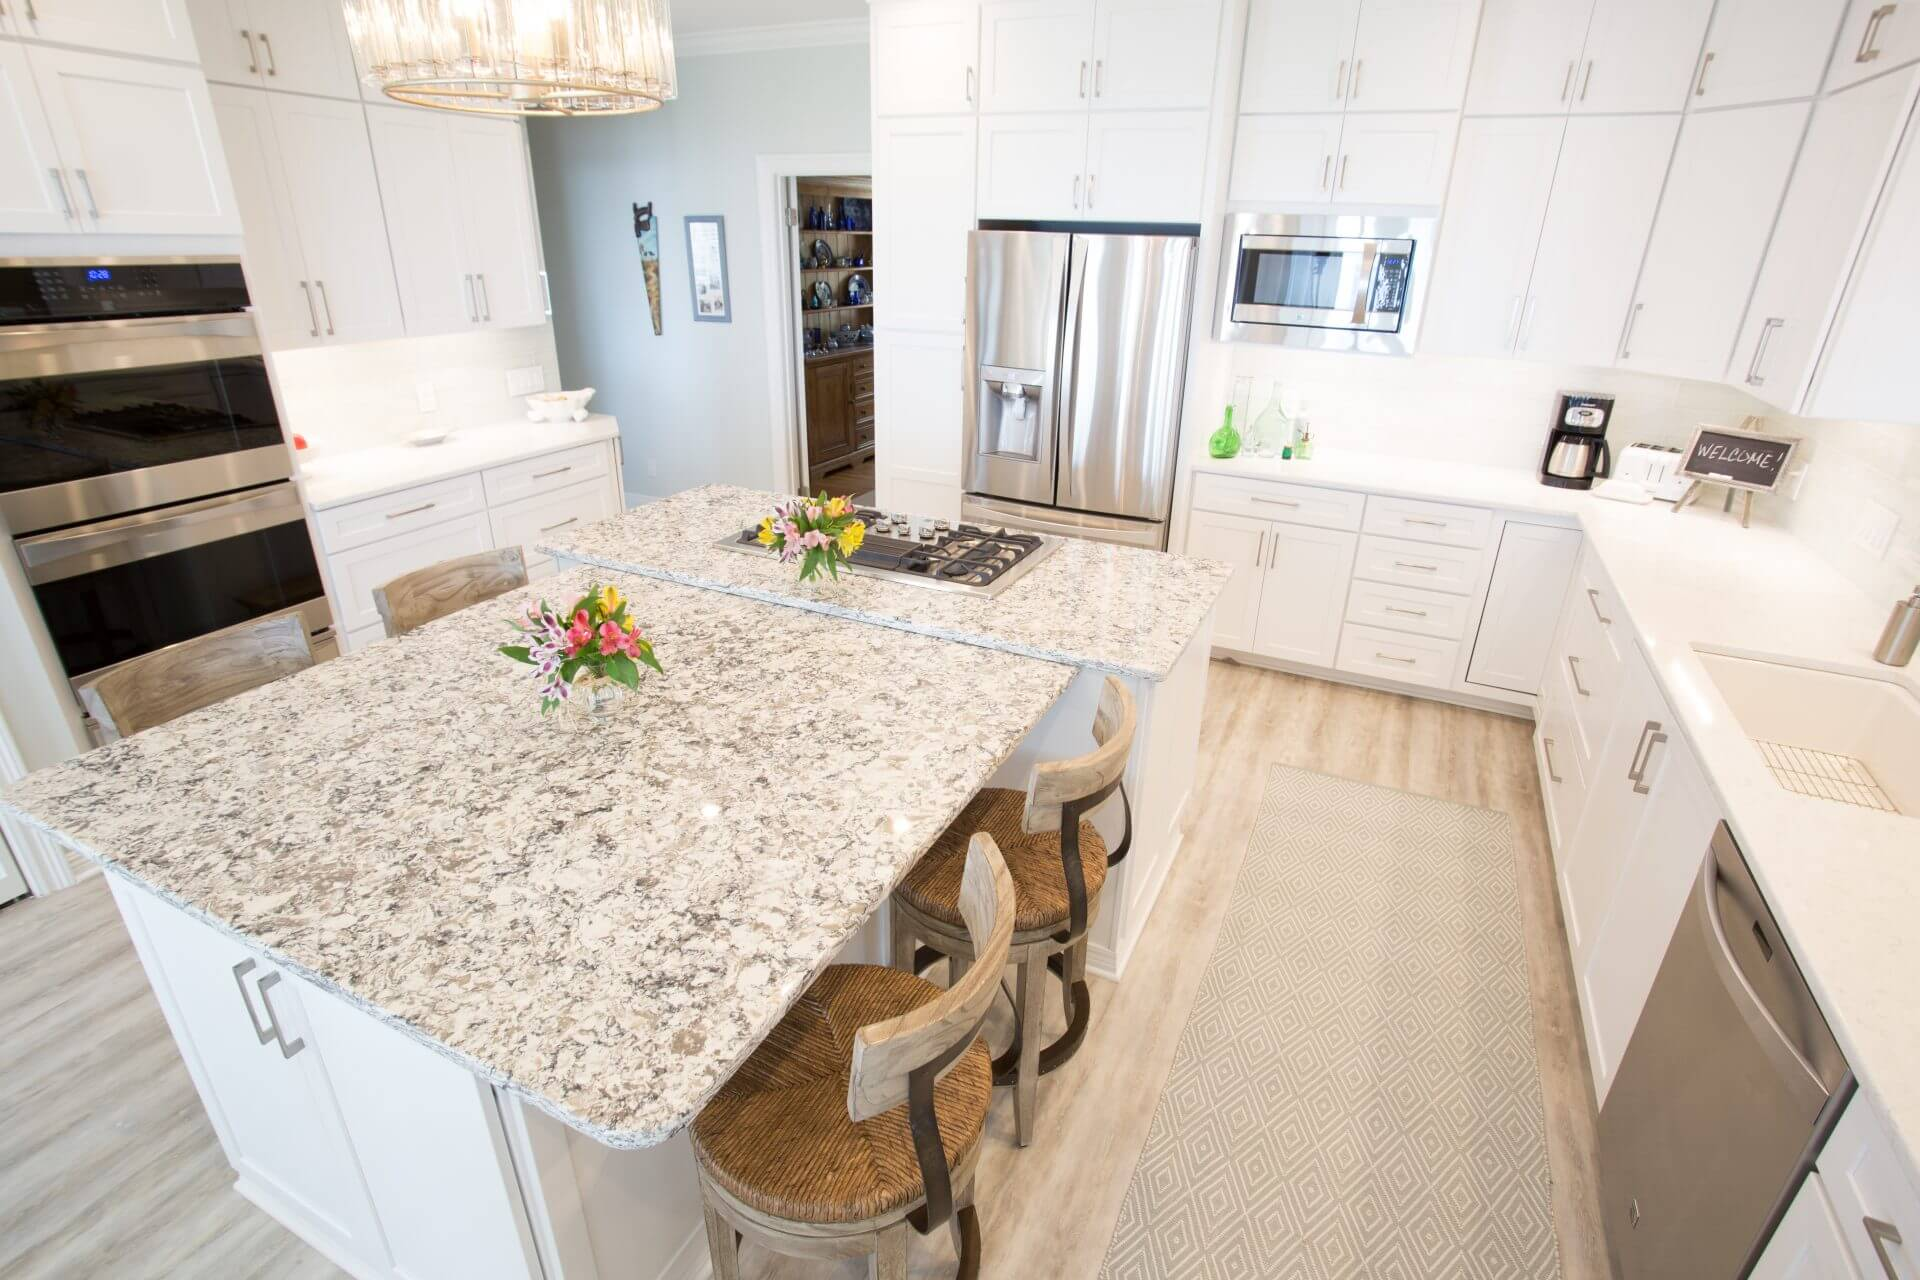 Custom designed kitchen cabinets with quartz countertops and stainless steel appliances